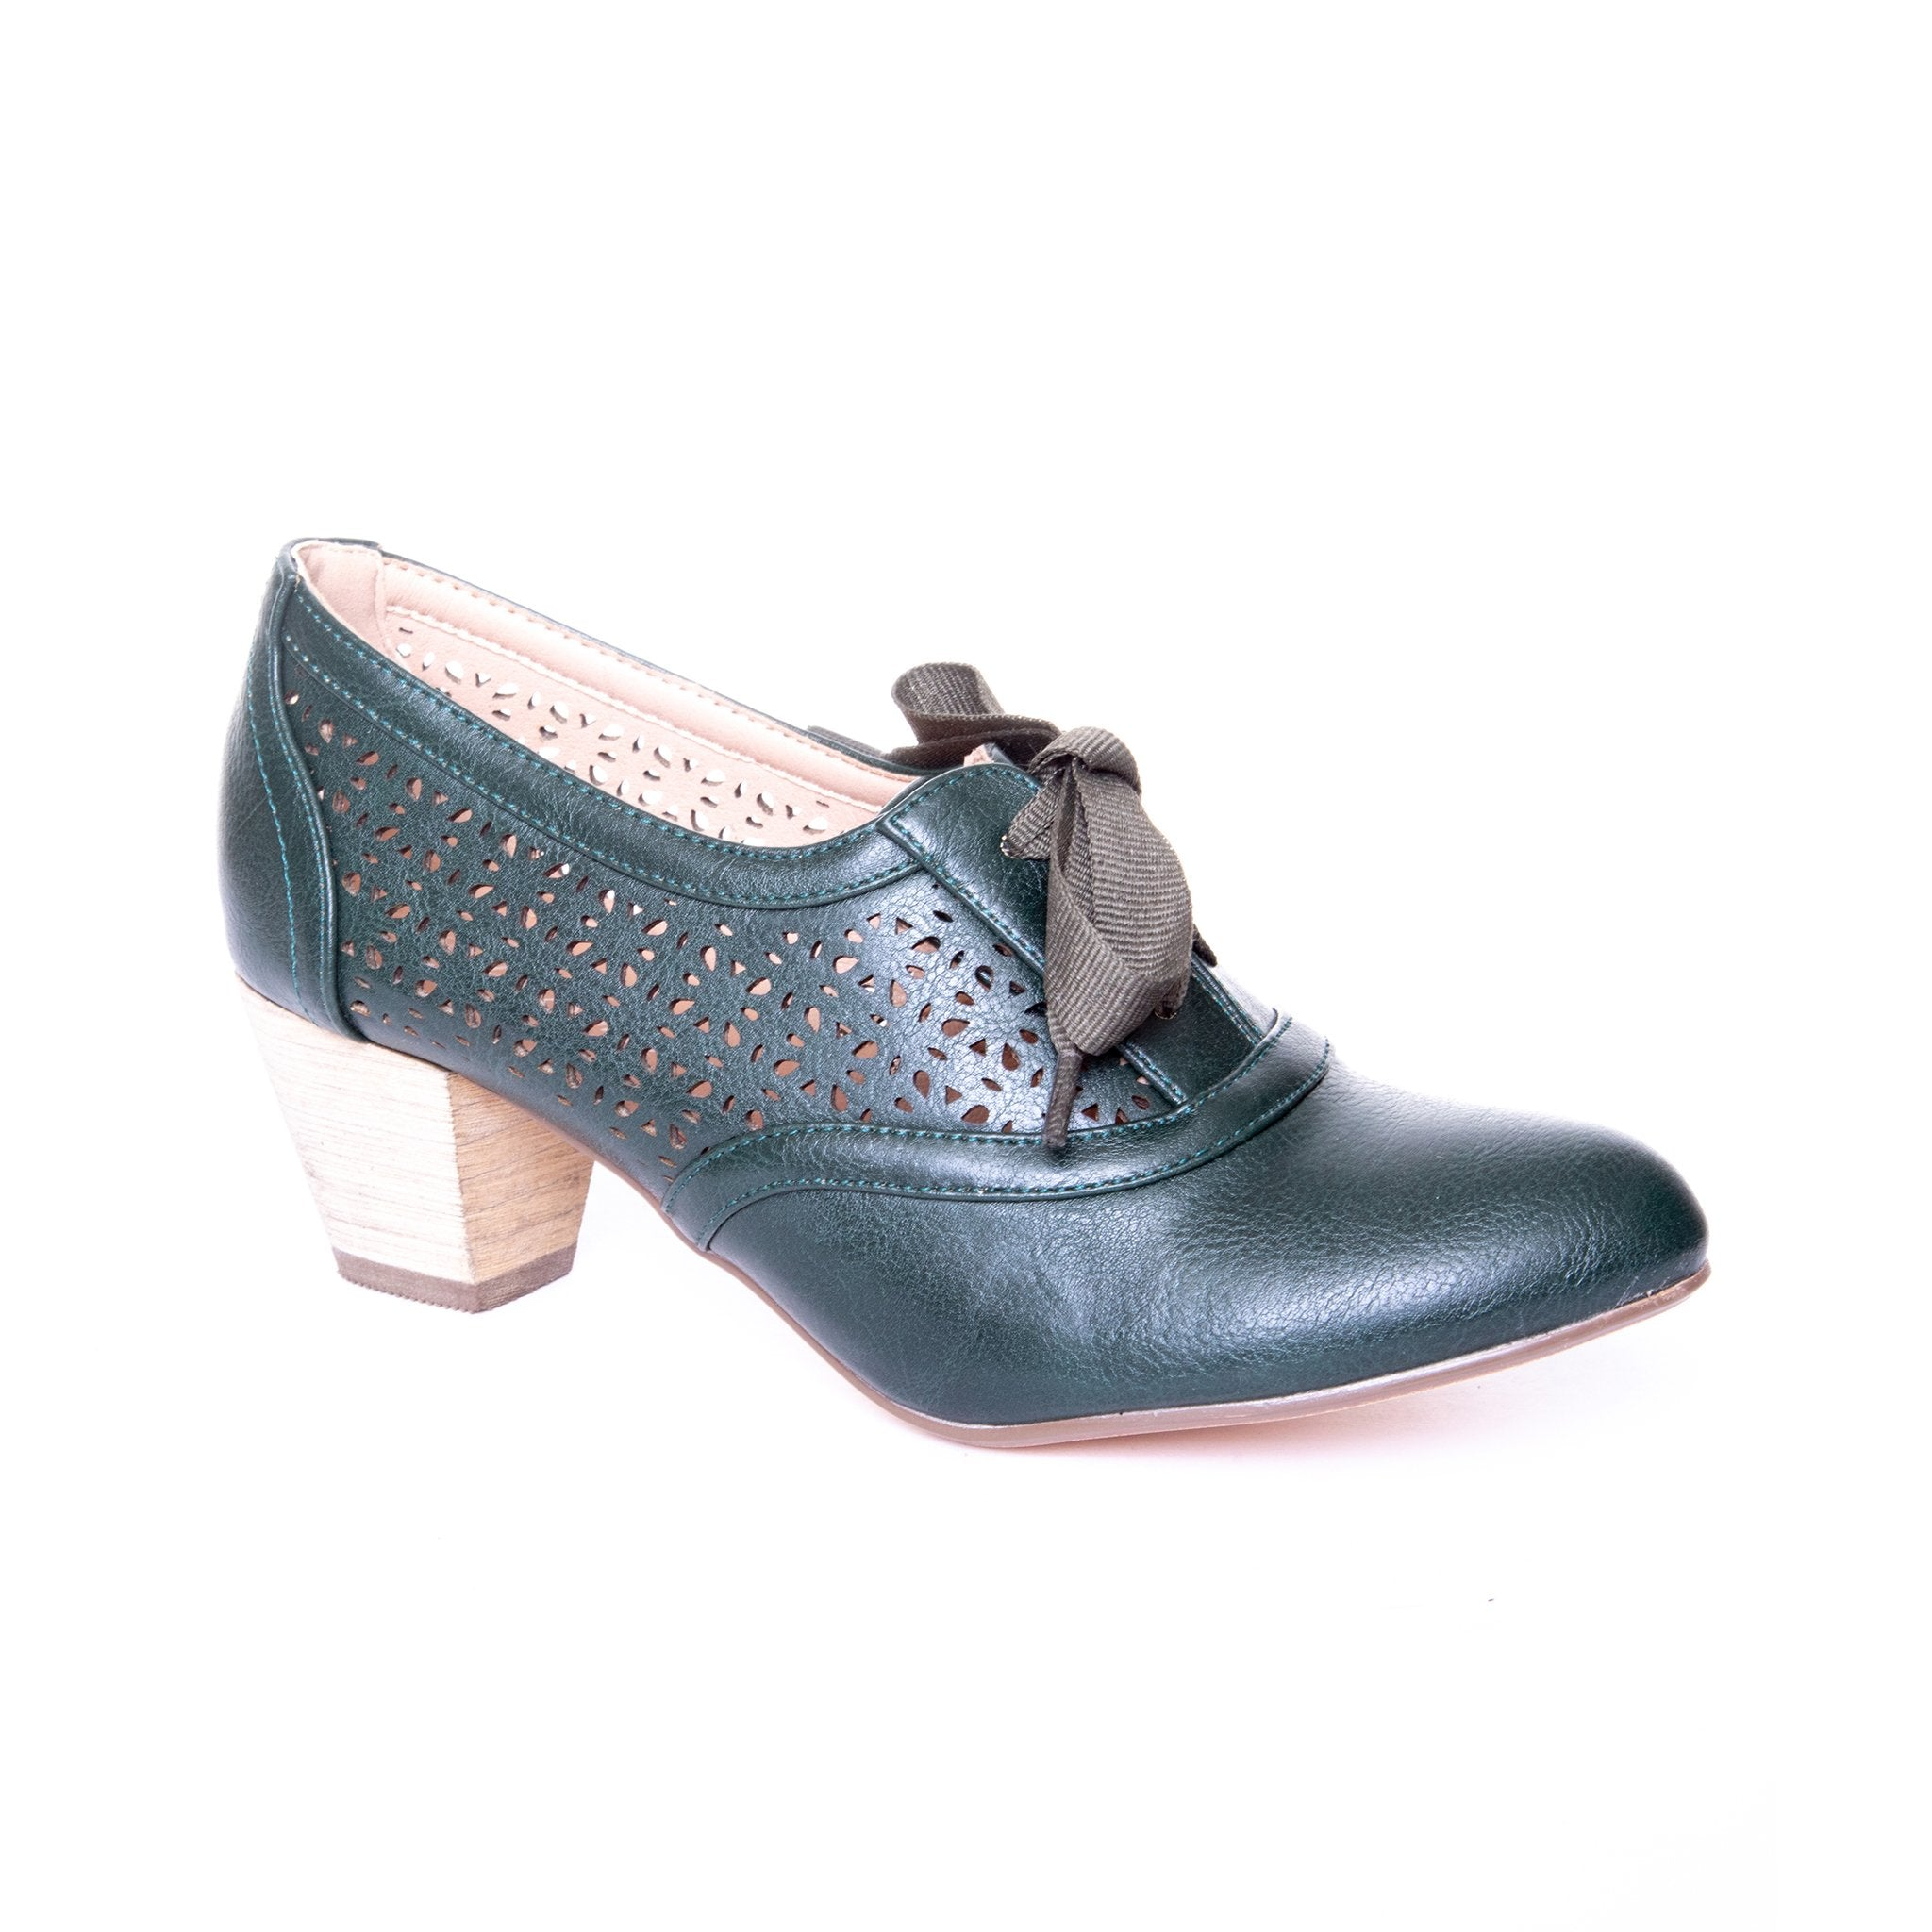 Selena by Dolce Nome | Lace Up Oxford Pumps in Green (main view)